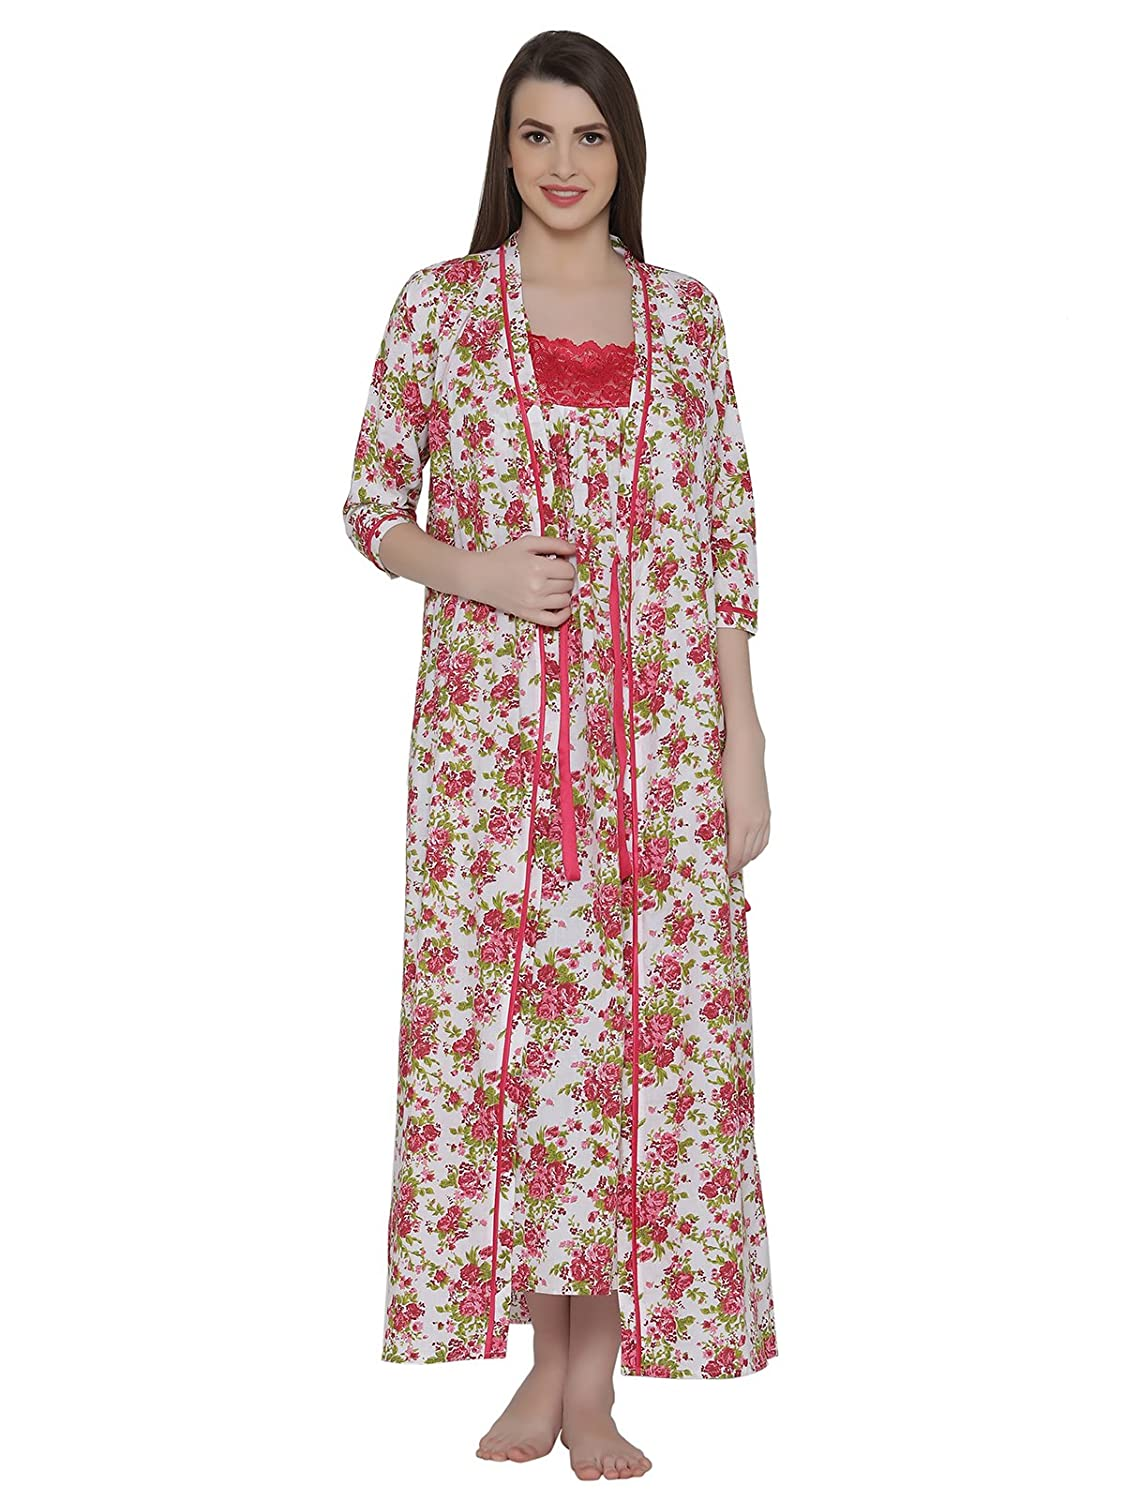 Clovia Women s Cotton Rich Floral Print Nighty   Robe  Amazon.in  Clothing    Accessories 06f5692e0